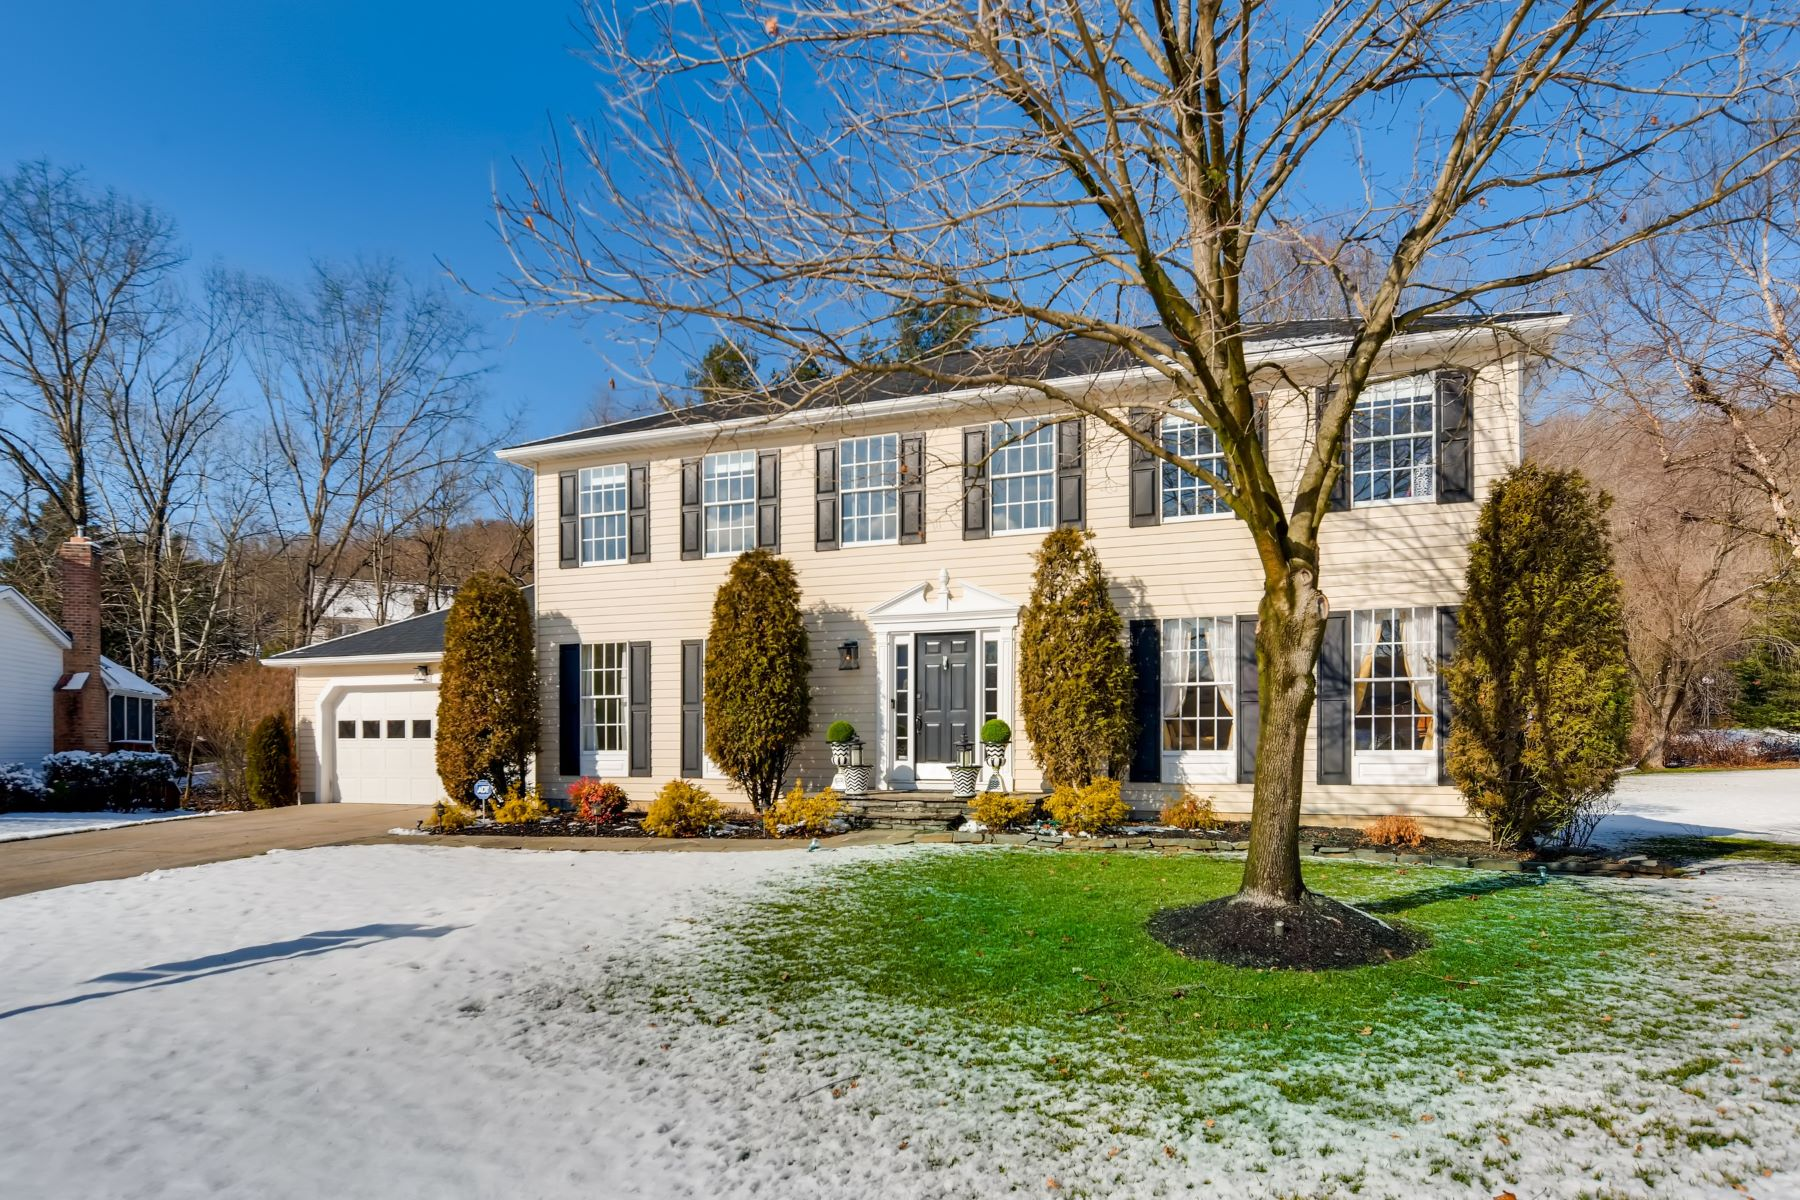 Single Family Homes for Active at Hunt Valley Station 11616 Silvermaple Court Cockeysville, Maryland 21030 United States